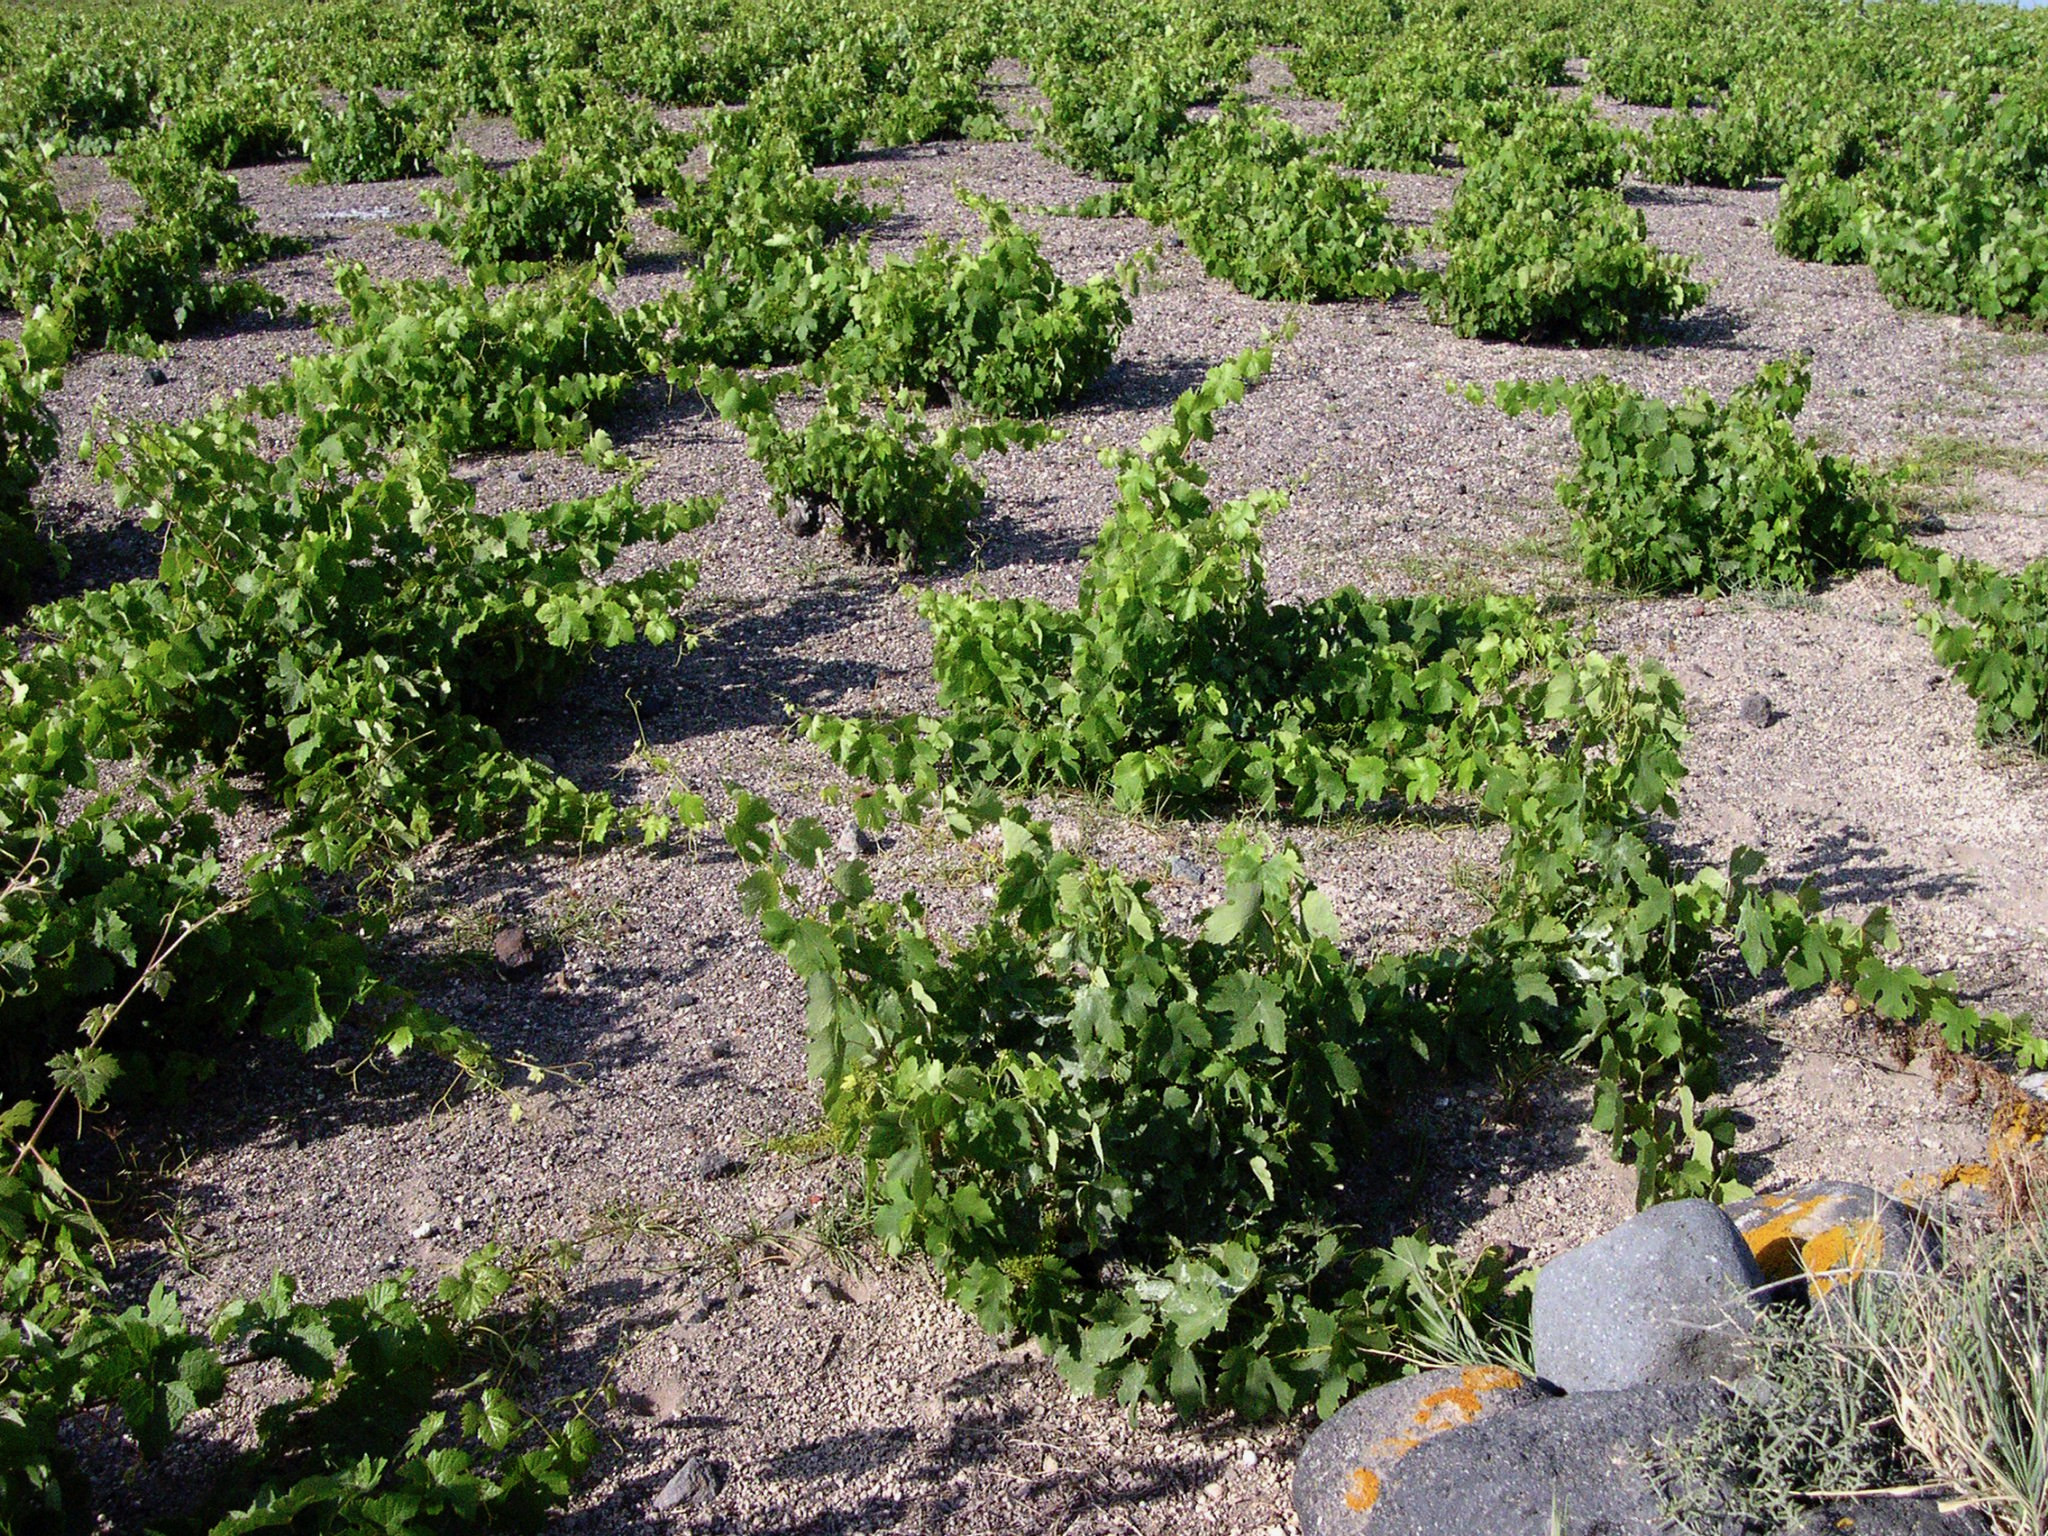 View of grapevines grown close to the ground in Santorini